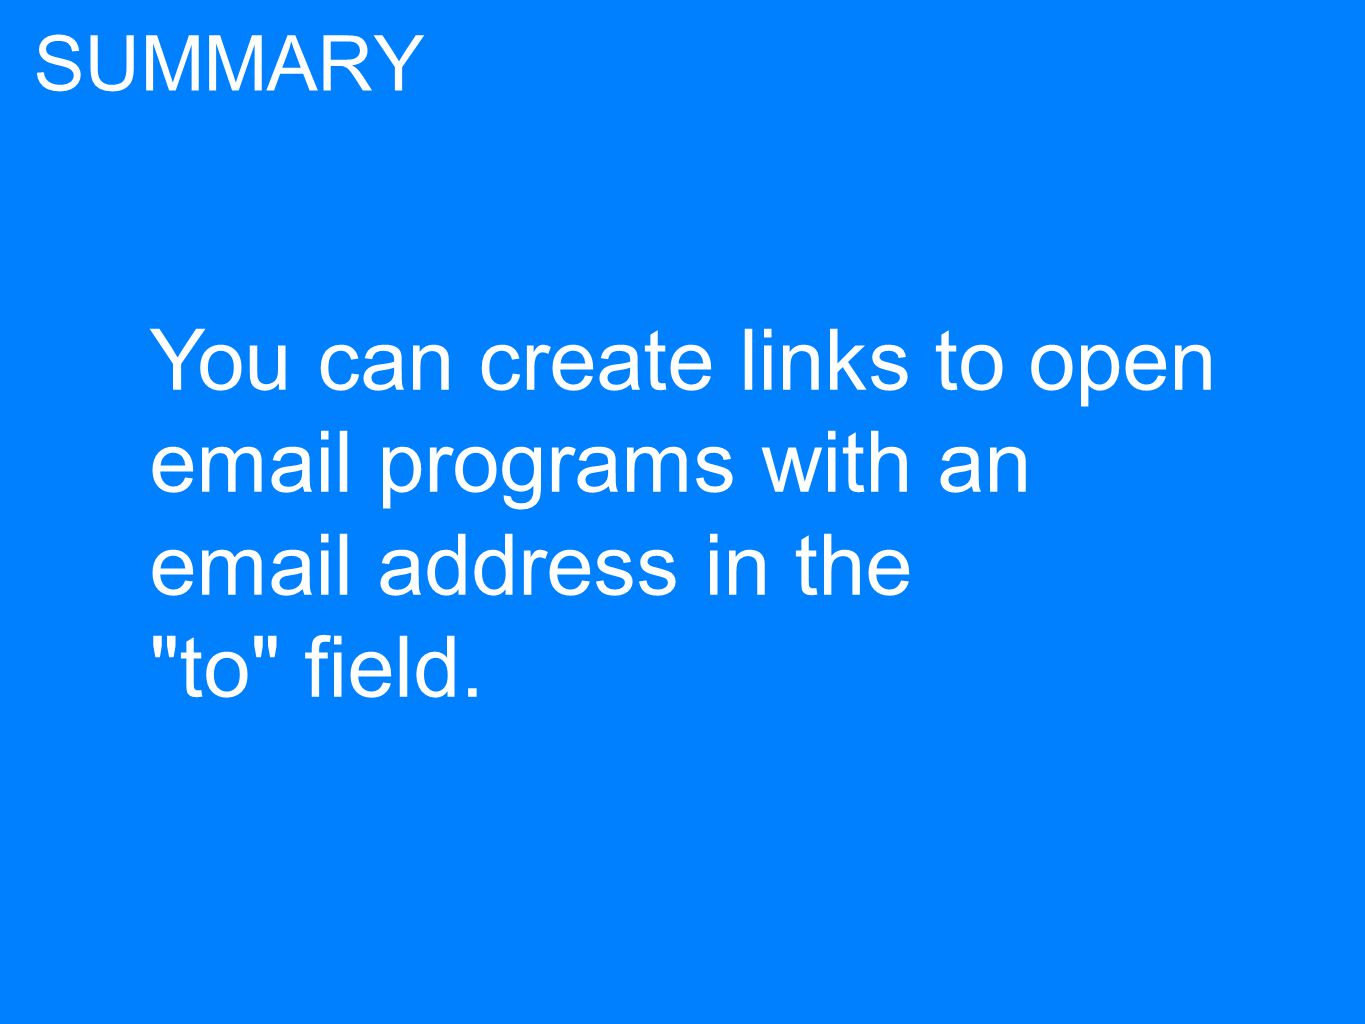 You can create links to open email programs with an email address in the to field. SUMMARY